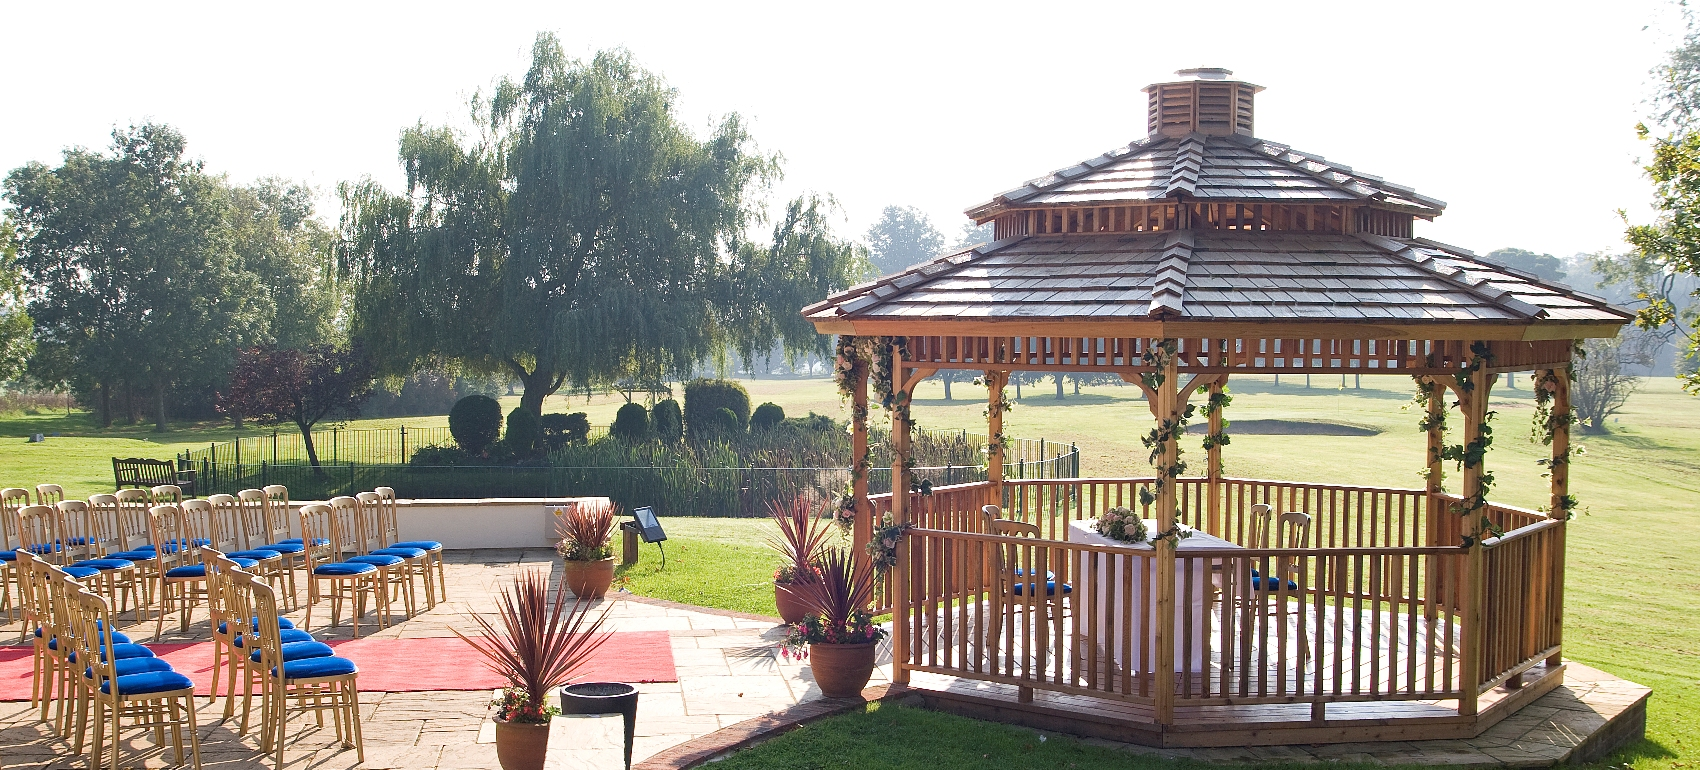 The Garden Gazebo for outdoor ceremonies